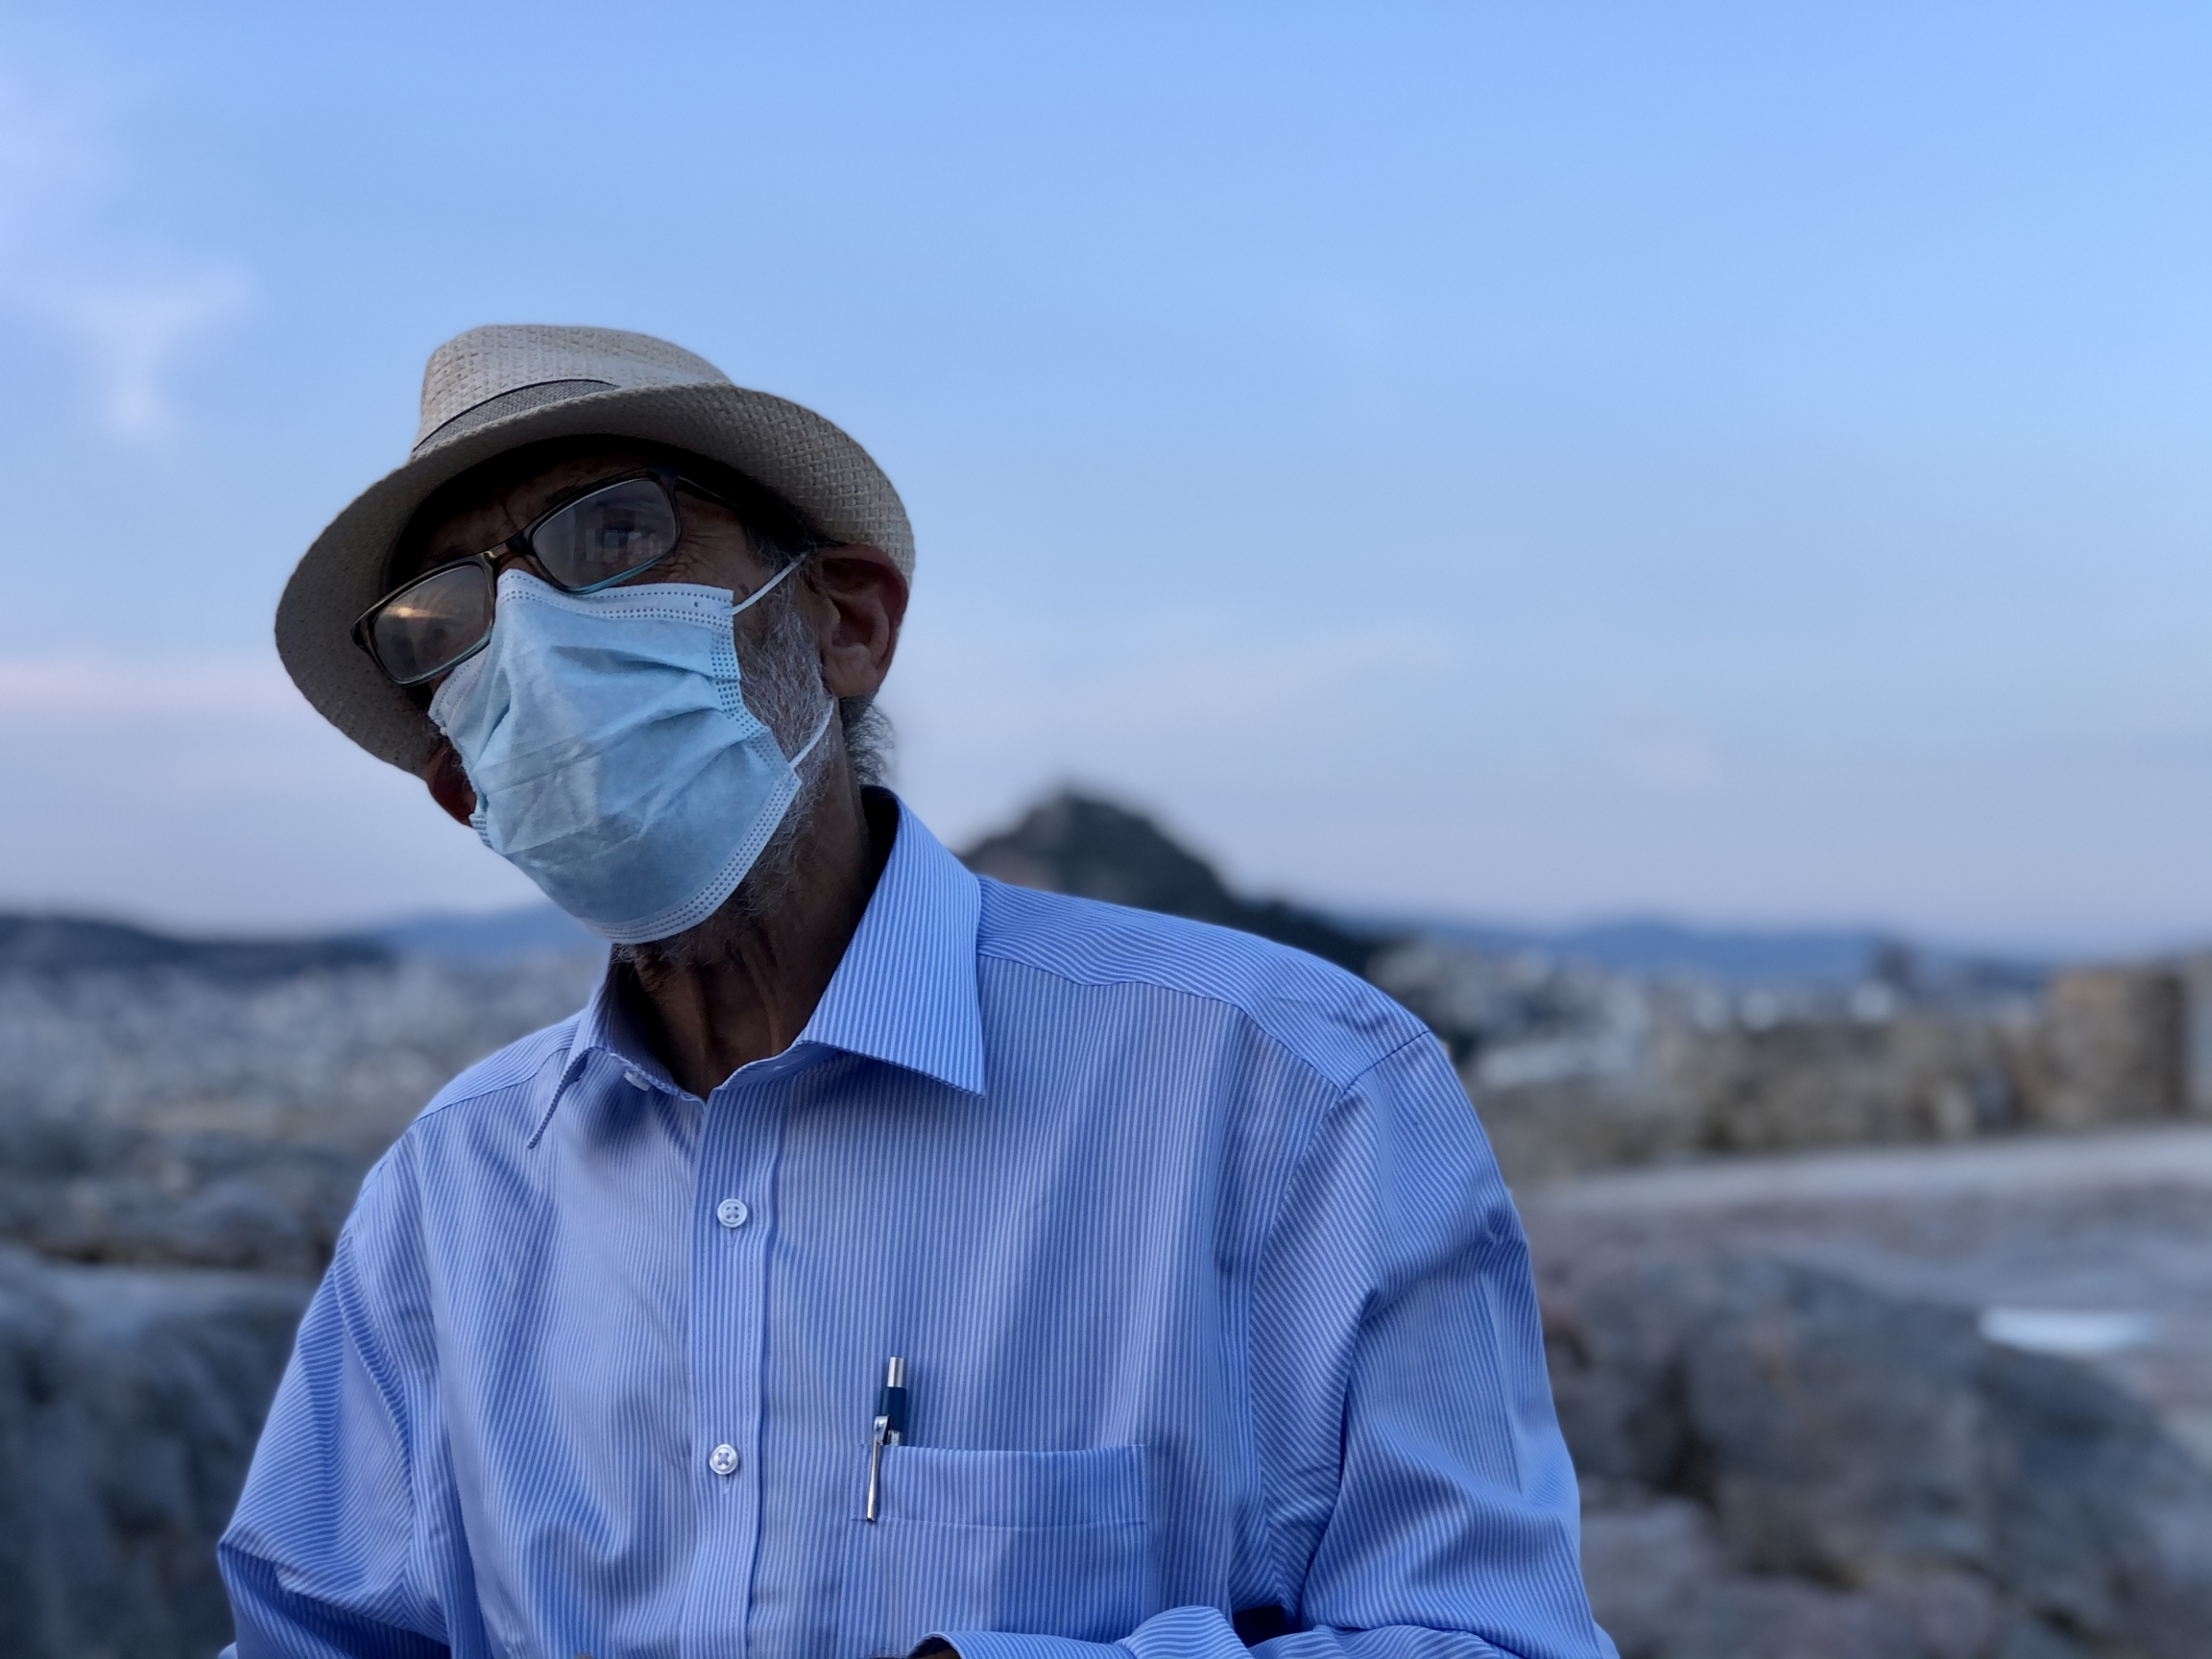 Manolis Korres, an internationally renowned restoration architect and globally respected Acropolis expert is spearheading much of the work on the site in Athens, Greece.